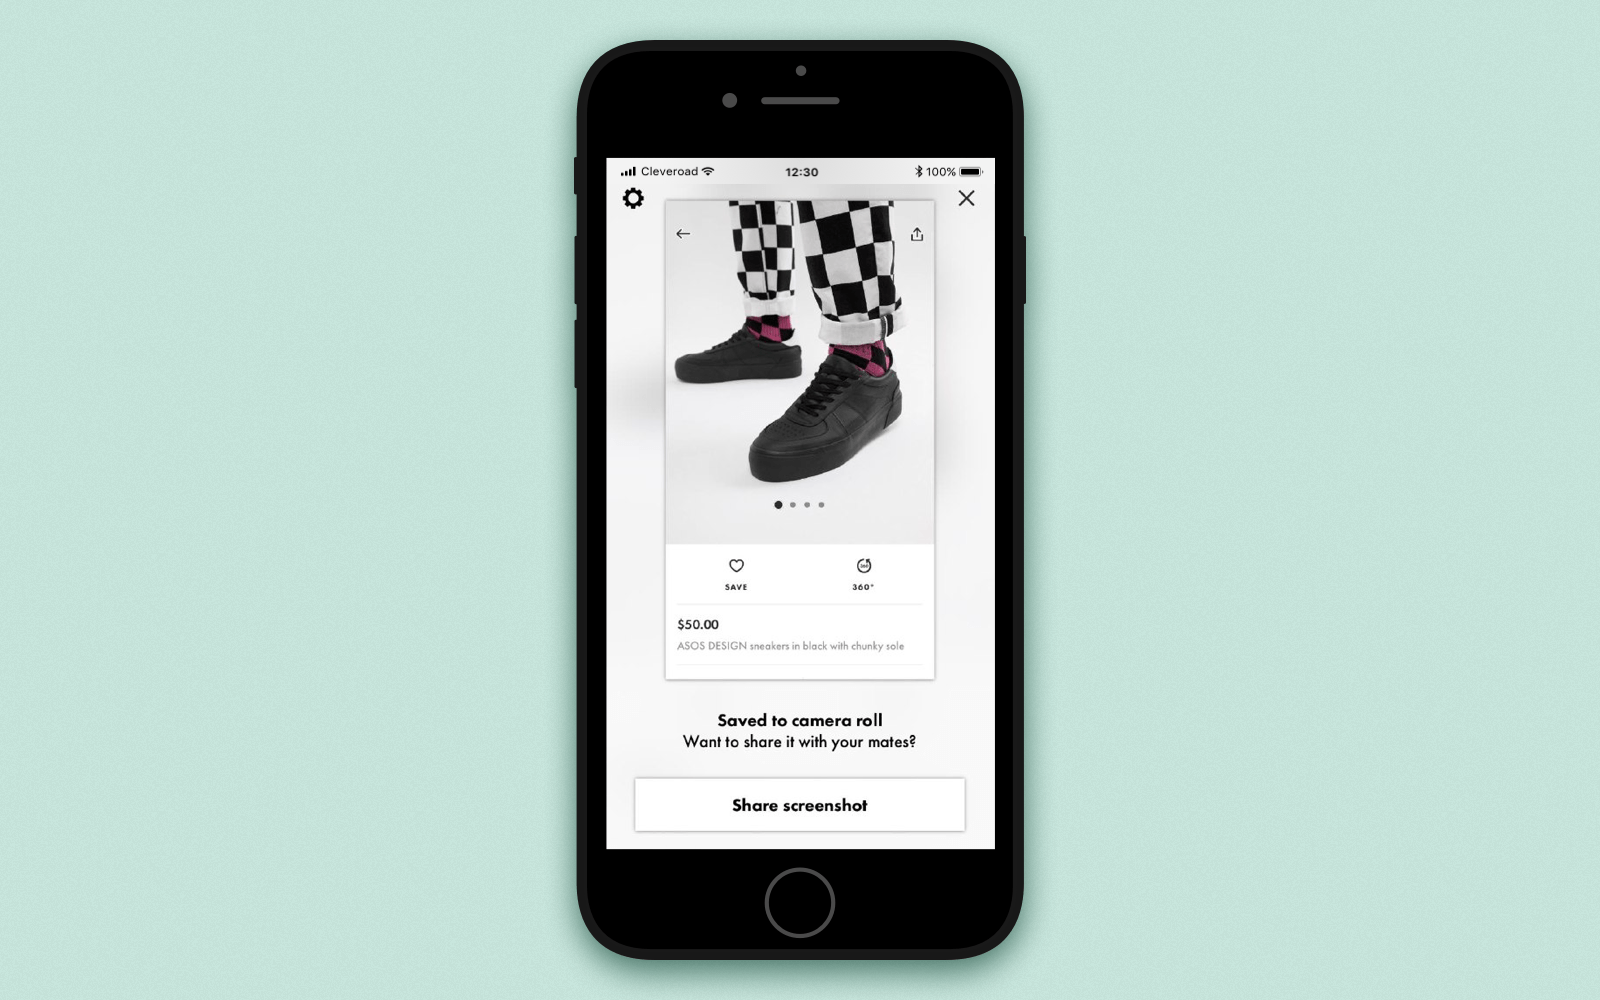 Make a shopping app with sharing options